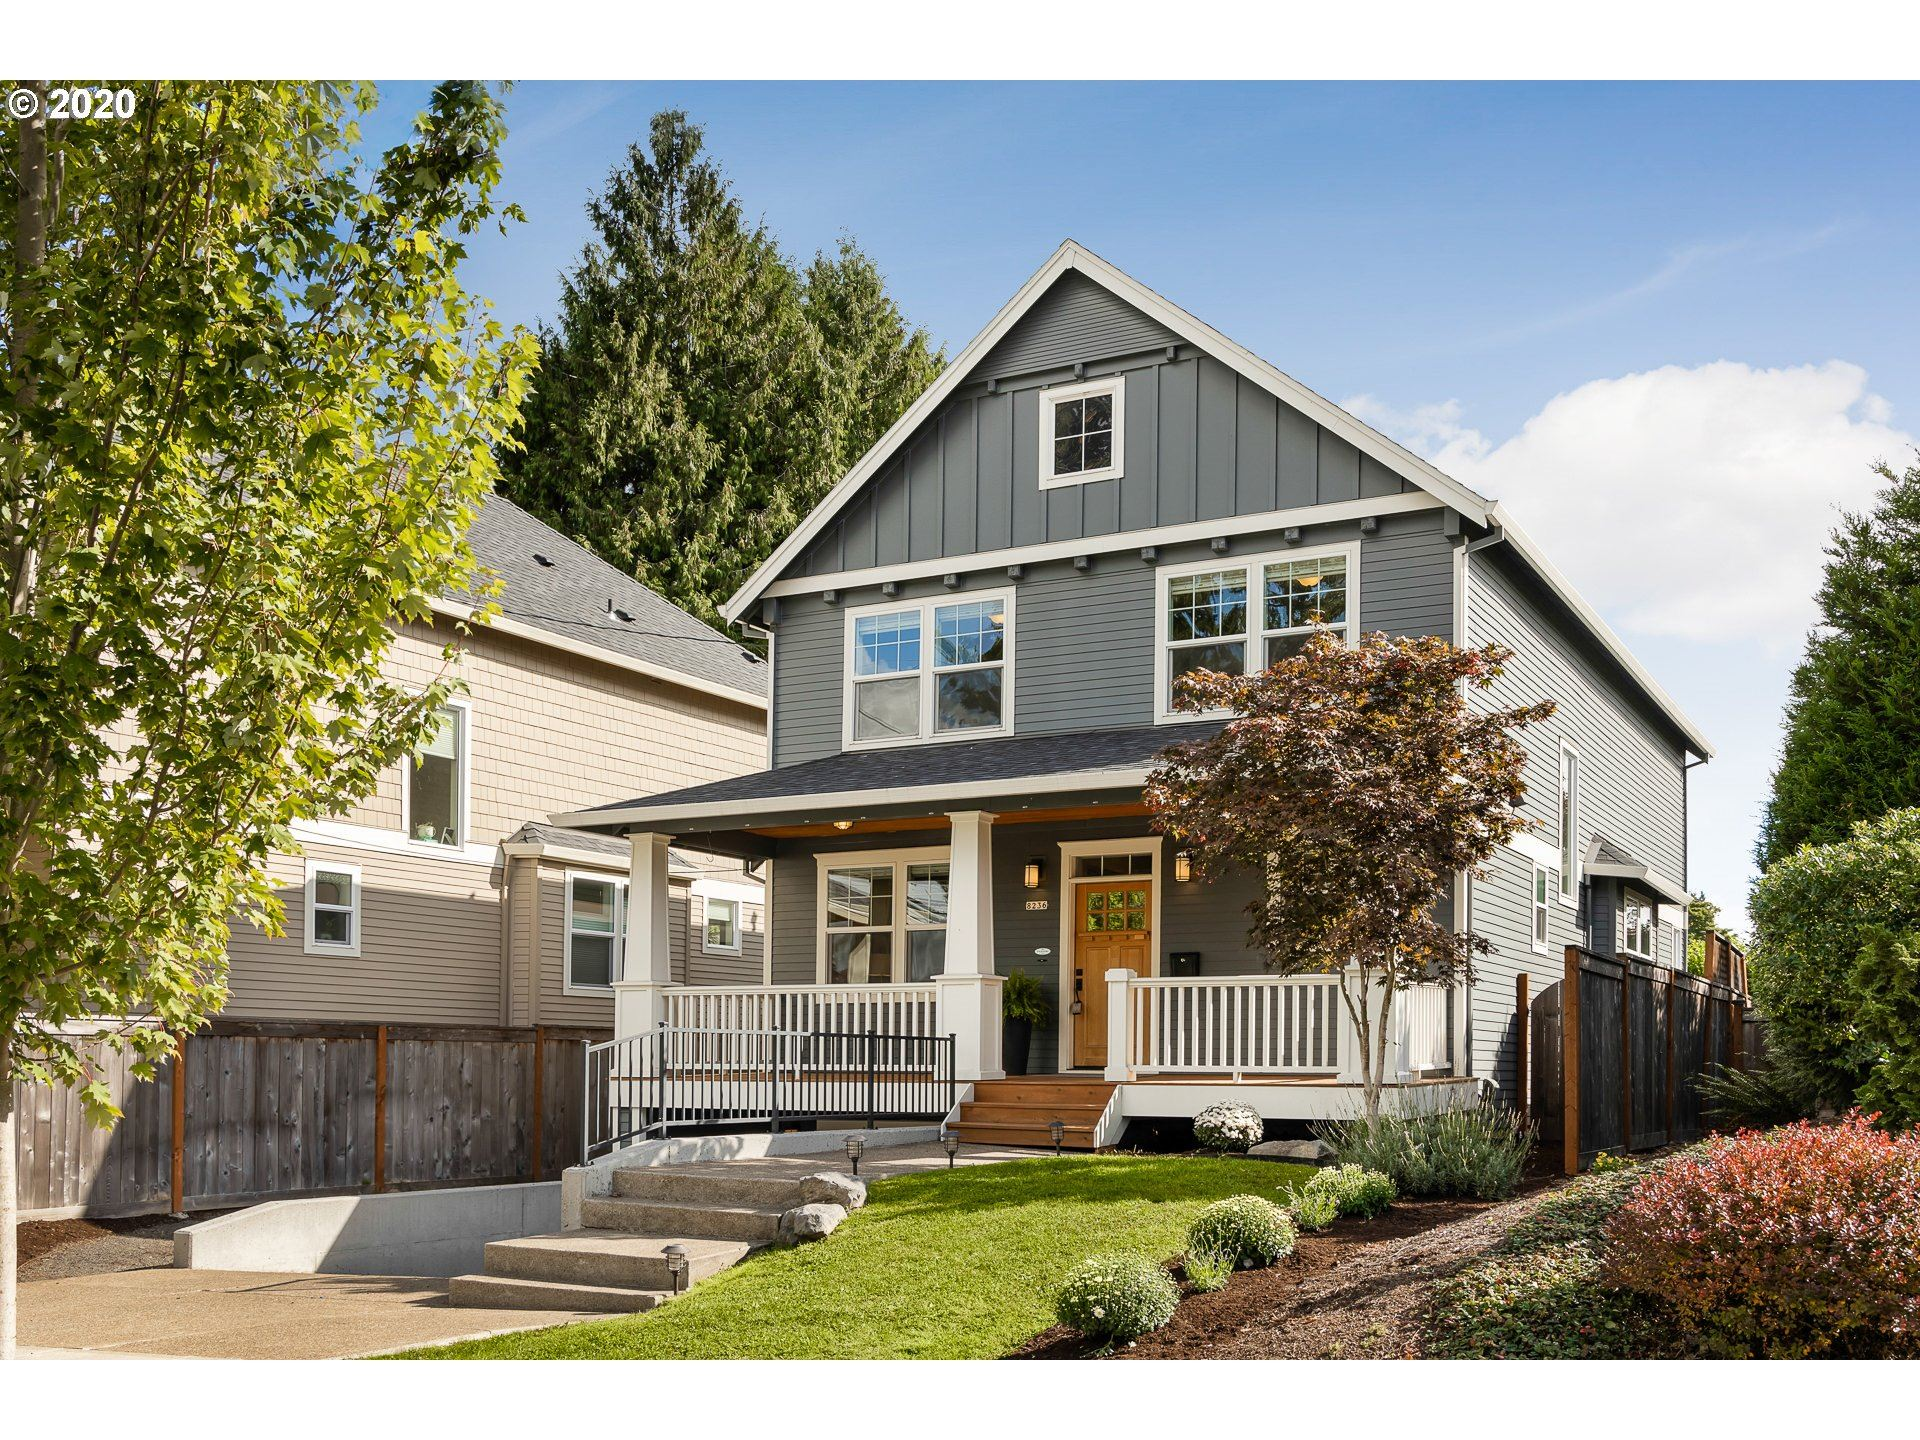 8236 SW 11TH AVE, Portland, OR 97219 - MLS#: 20524215